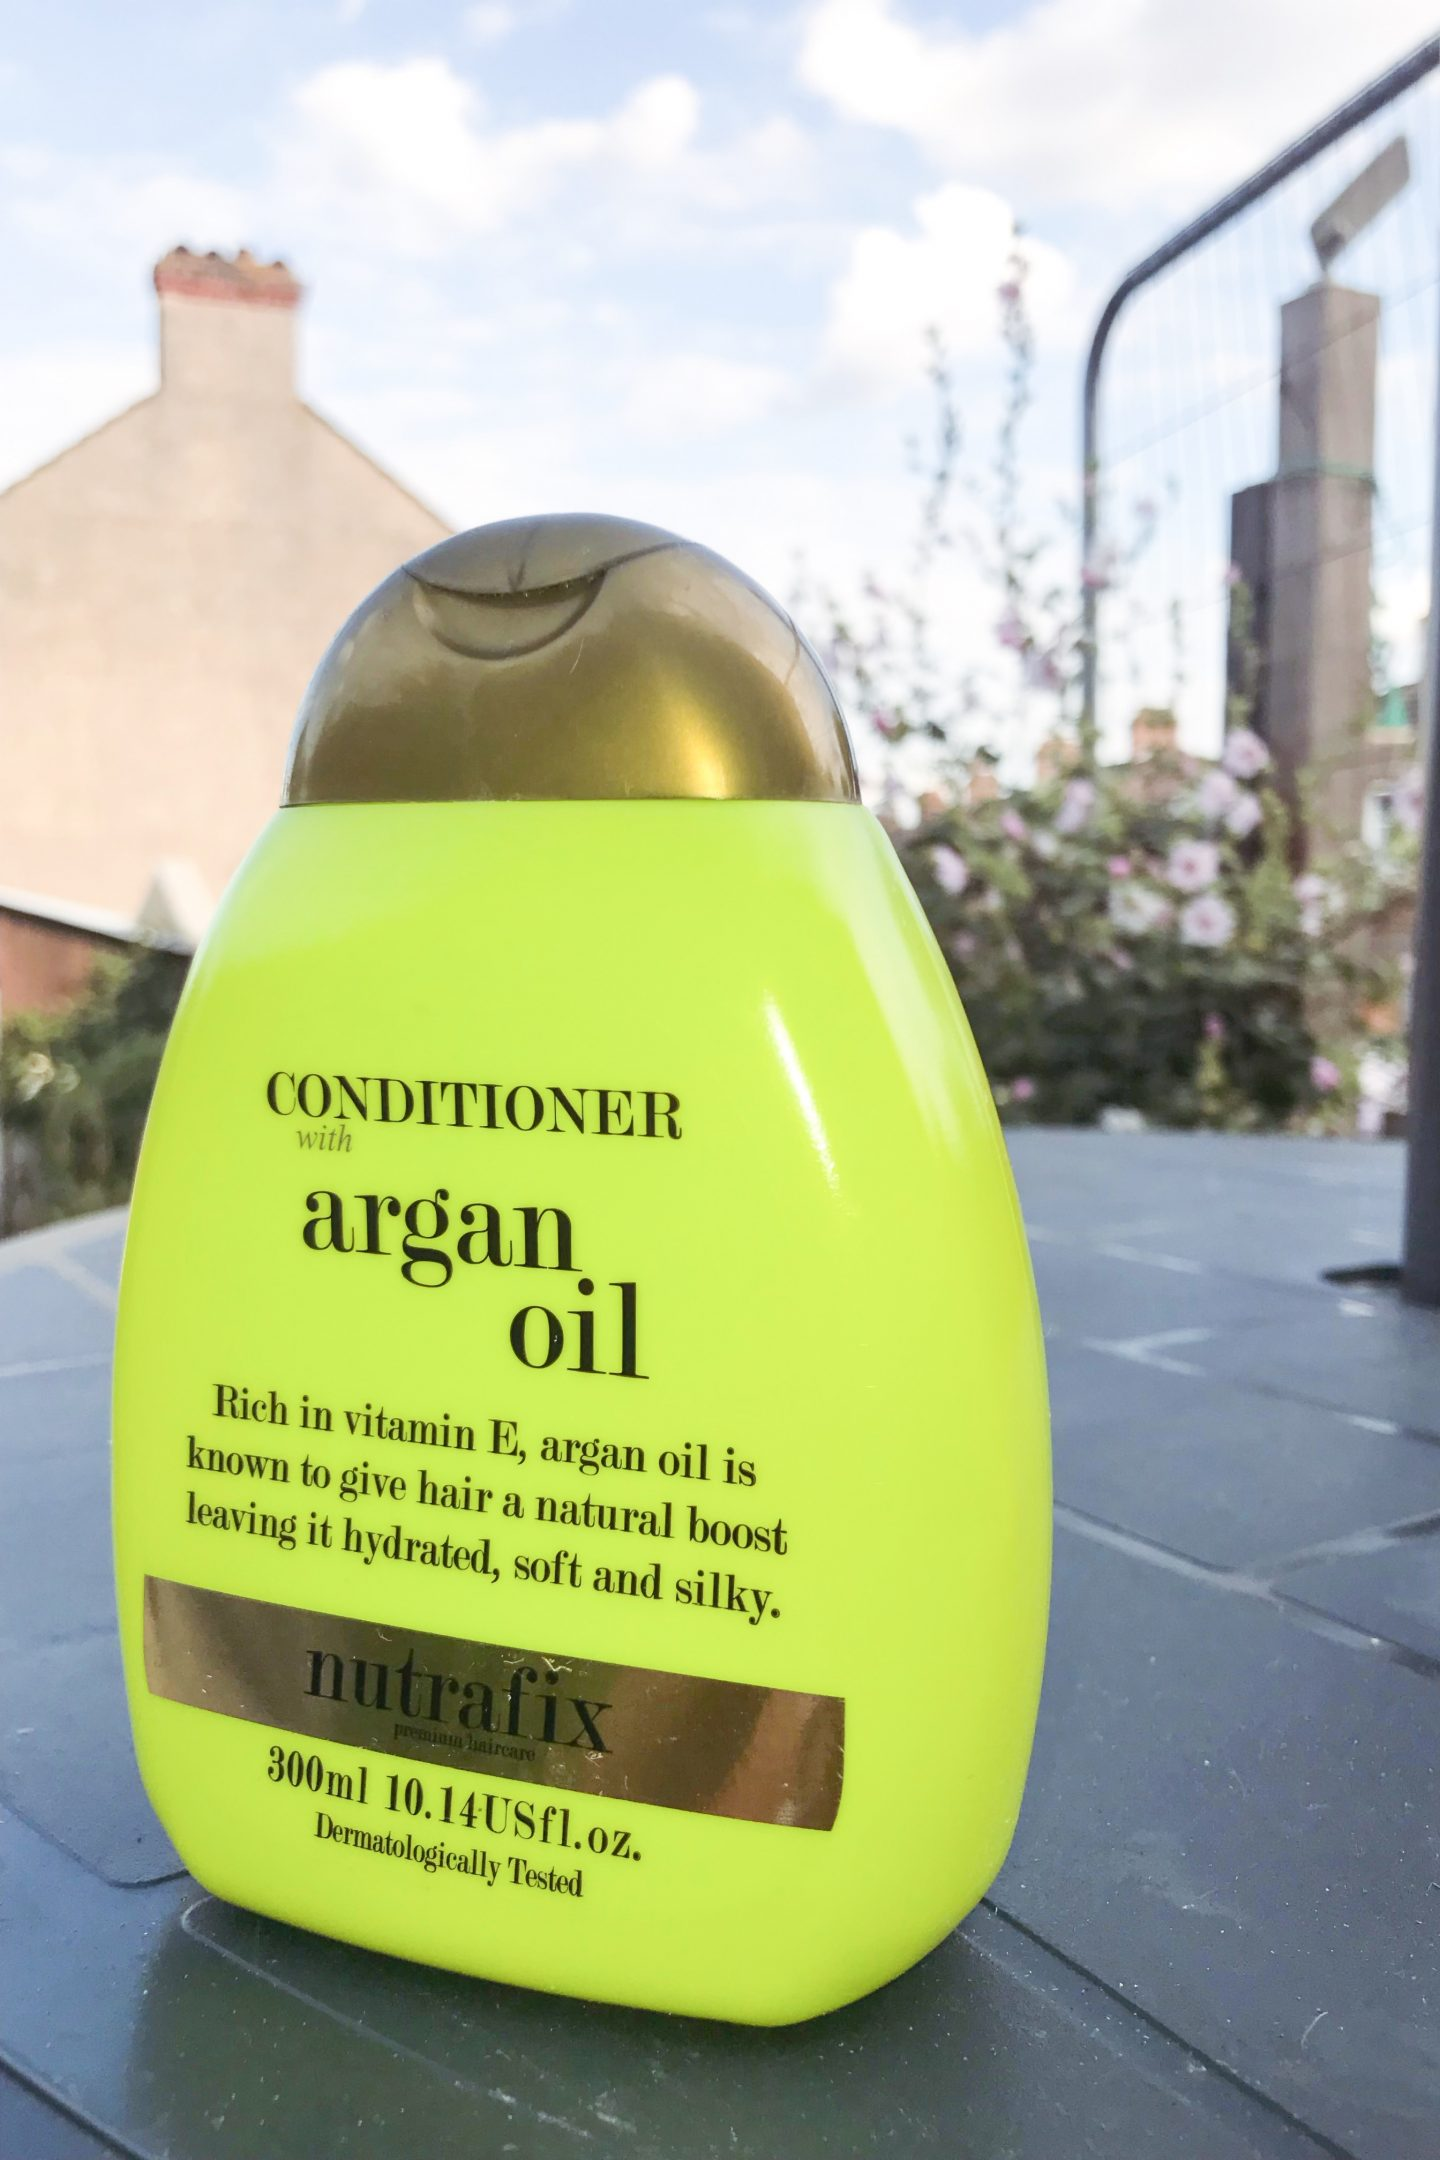 Nutrafix argan oil conditioner 1440x2160 - Co-Washing - 4 steps to Ultra Moisturised Relaxed Hair [Video]